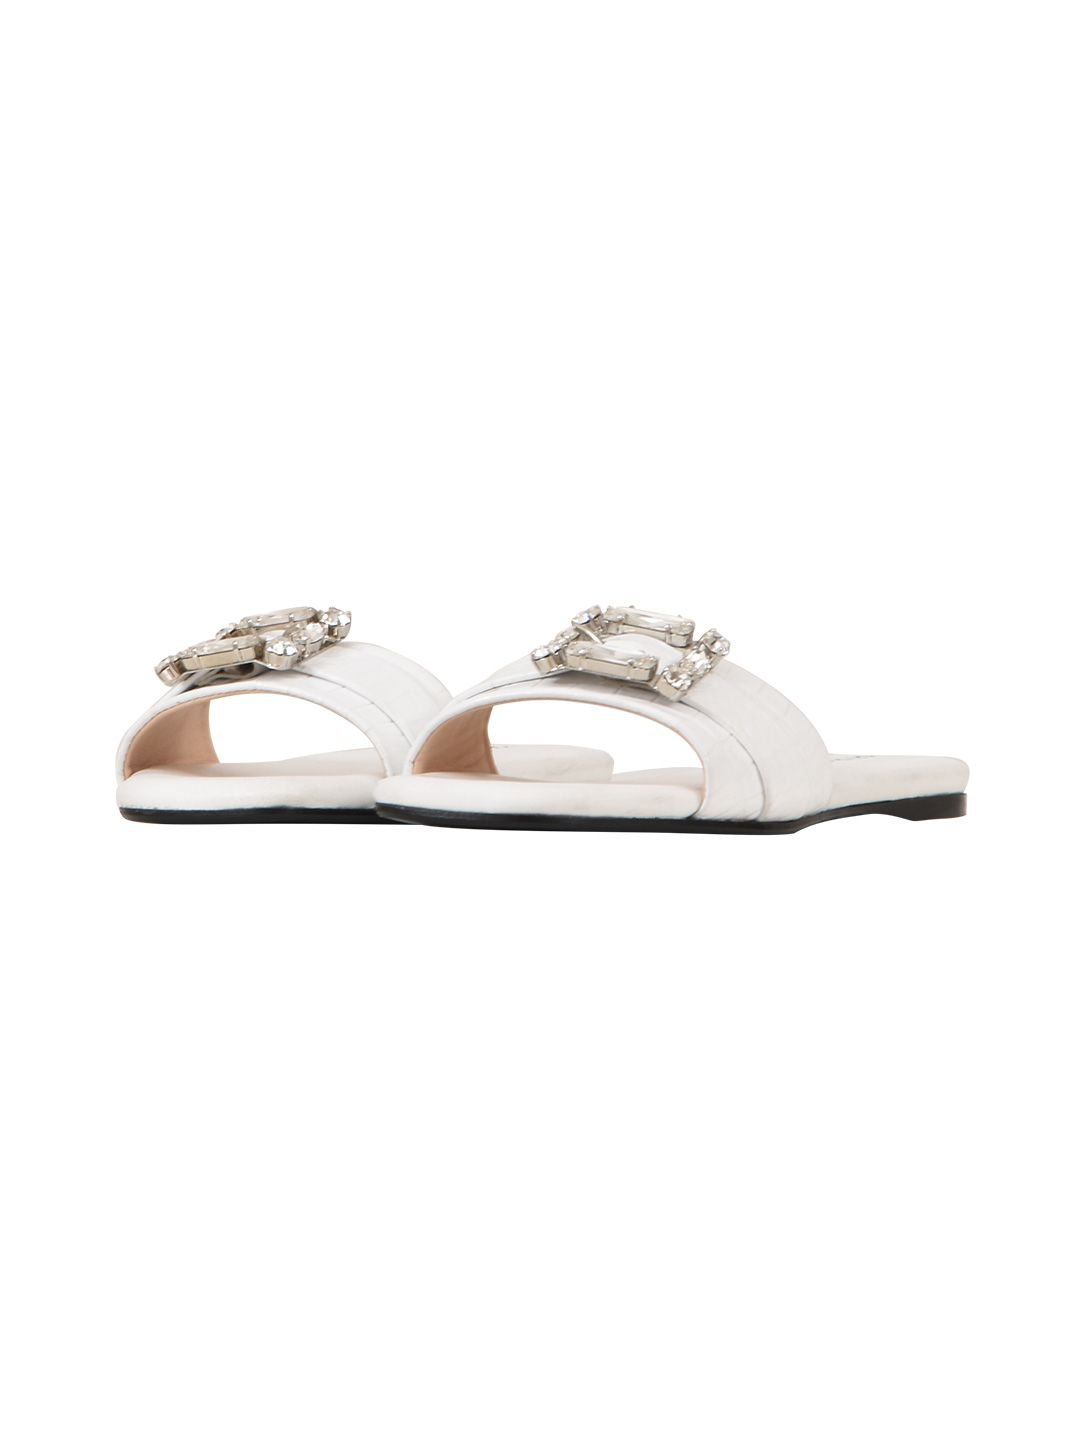 Buy Cheap Largest Supplier ANNA BAIGUERA Ave Crocco Mules Clearance Choice Outlet With Paypal Order Free Shipping Wiki eP0qxvCWgM